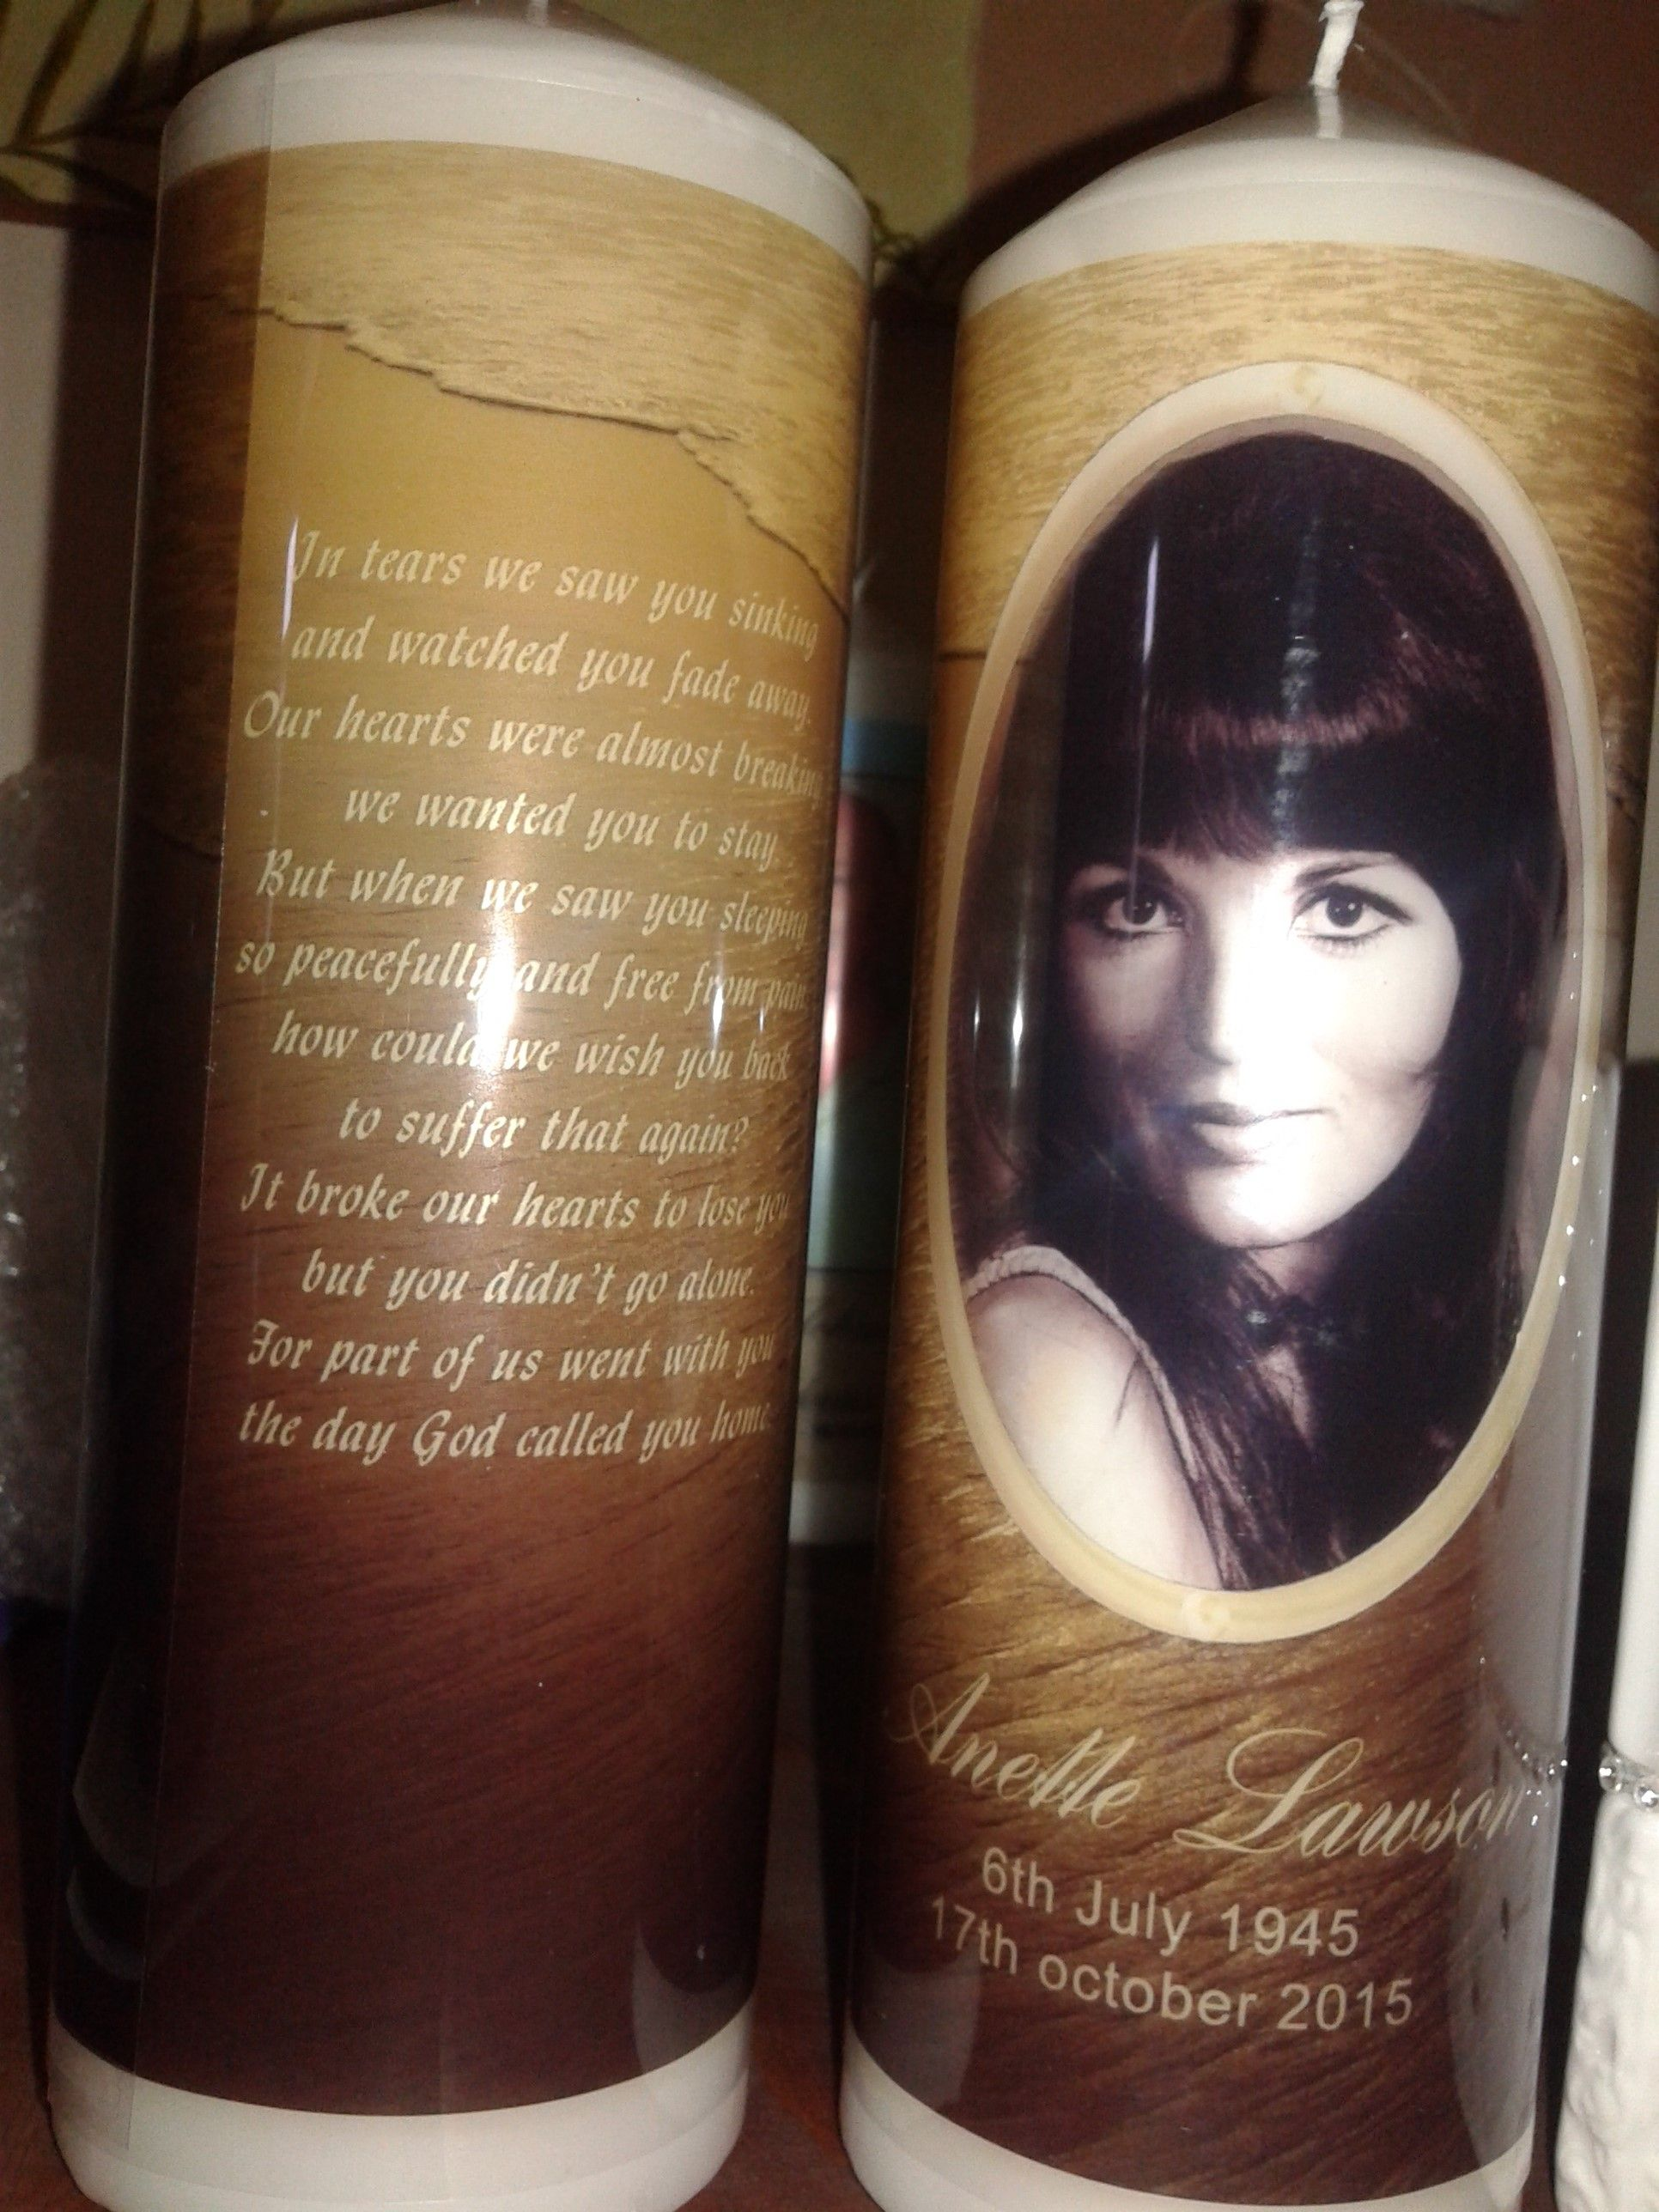 Personalised memorial candles made by mfg mosaic funeral group personalised memorial candles made by mfg mosaic funeral group amanzimtoti tel 031 903 5423 izmirmasajfo